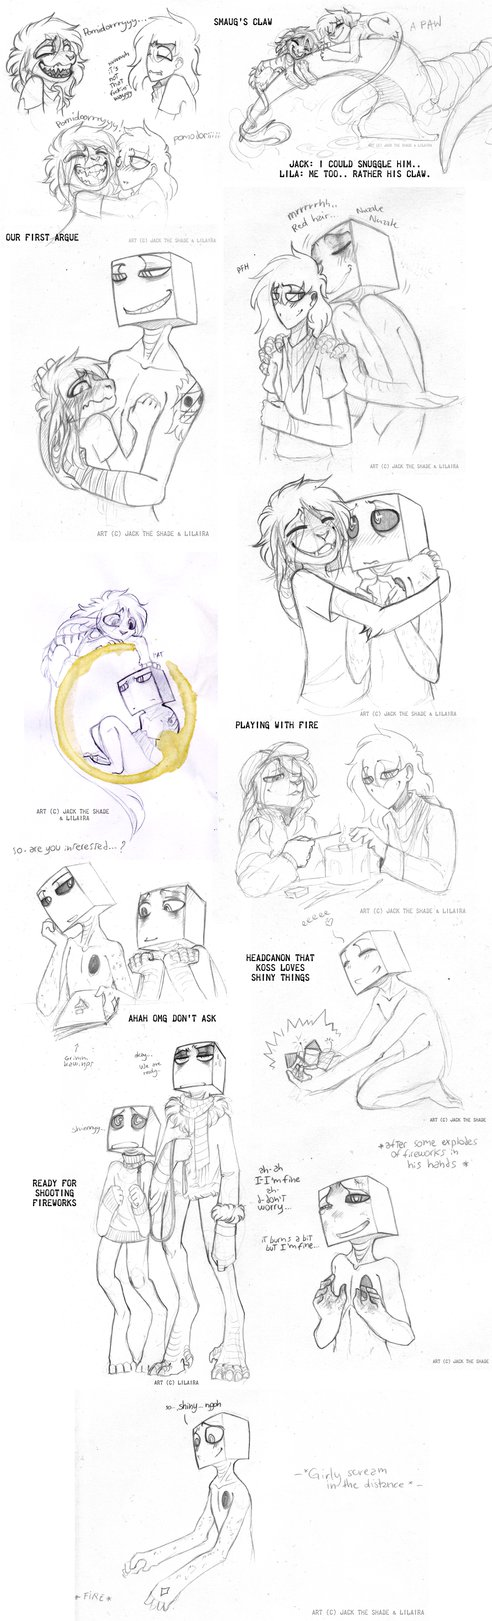 3rd Meeting Collabs U V U Silly Thingz More Drawings From